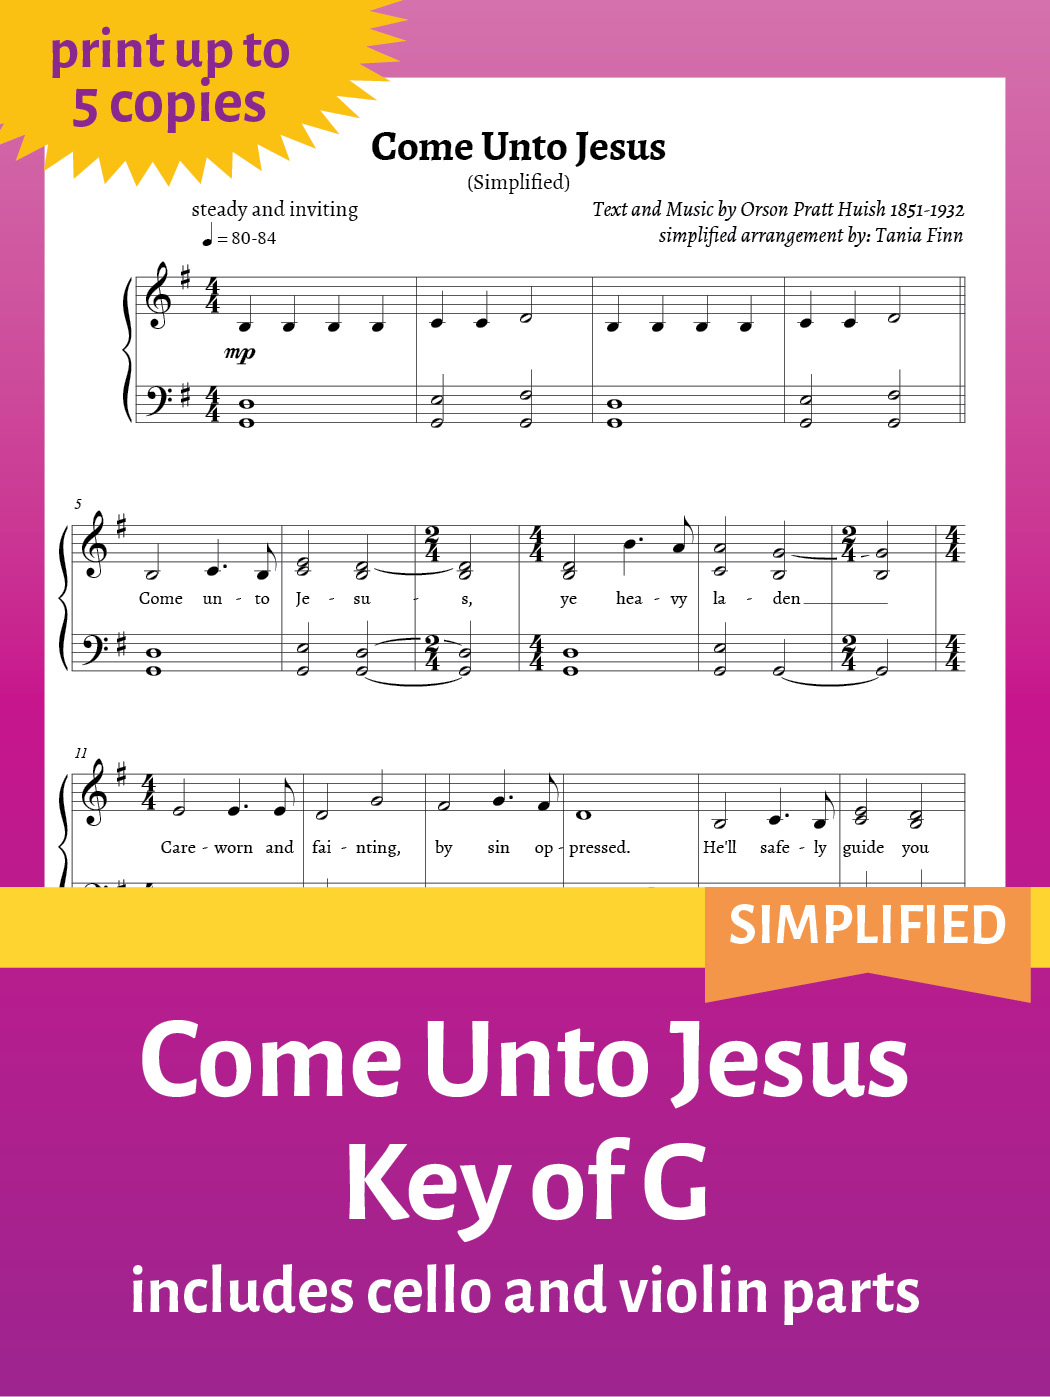 Come Unto Jesus – Sheet Music – Key of G – Simplified – up to 5 copies